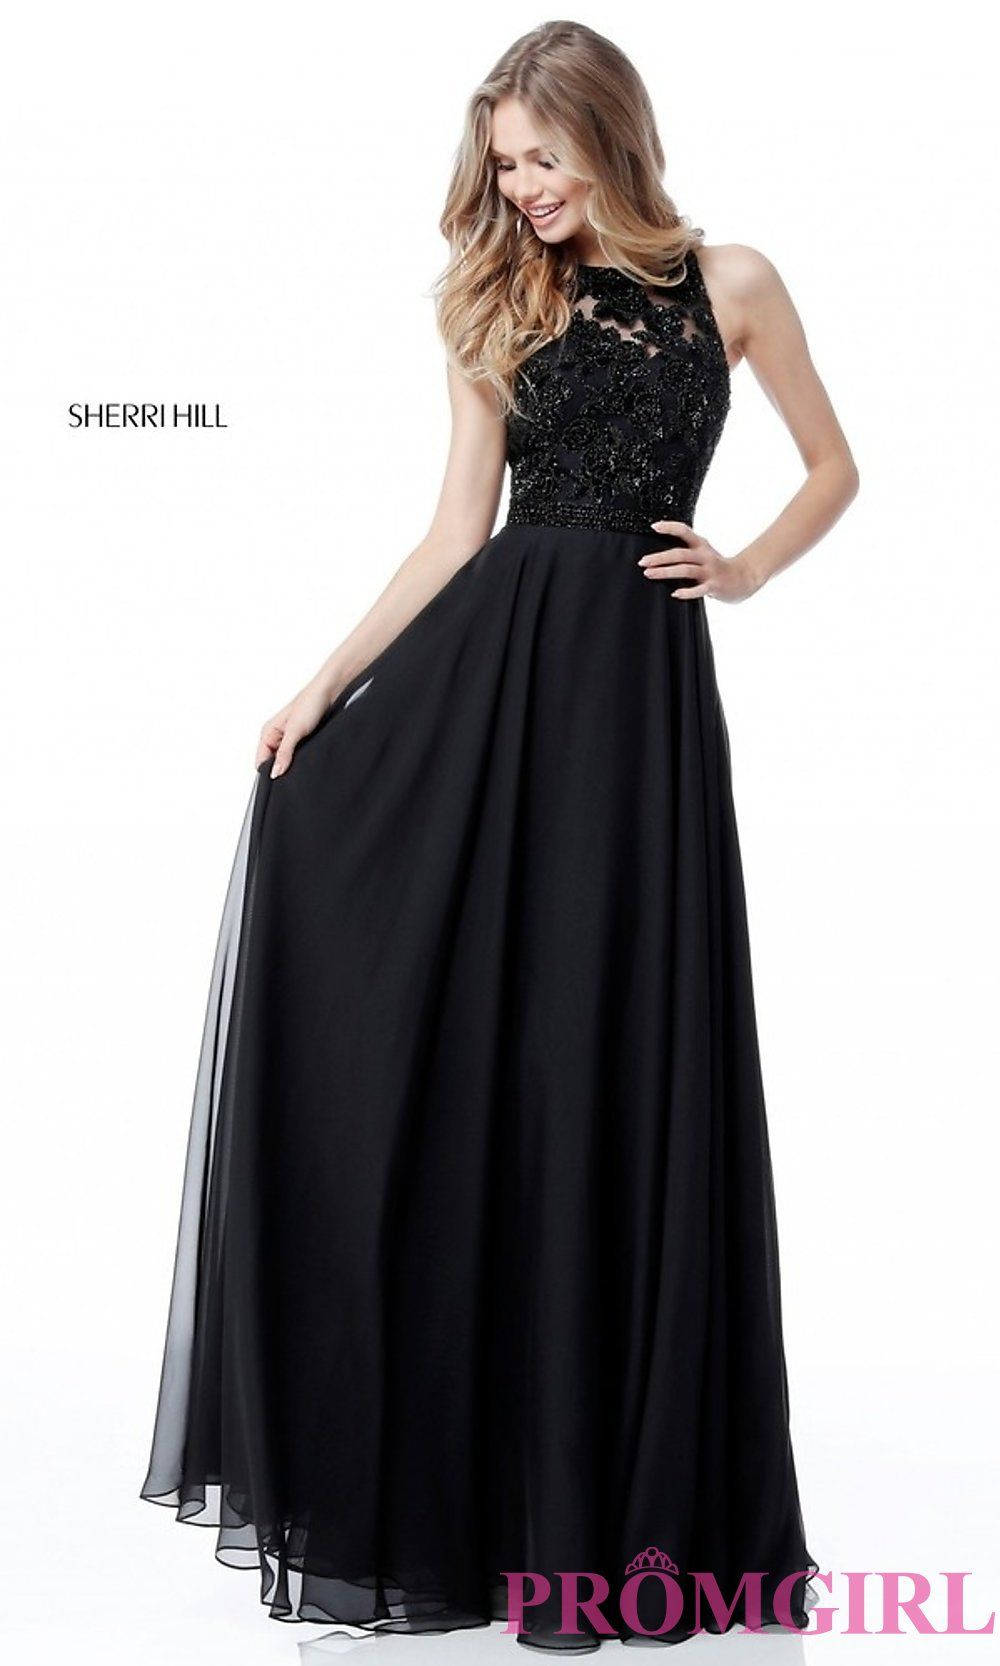 c4146911aa523 High-Neck Sleeveless Long Prom Dress by Sherri Hill